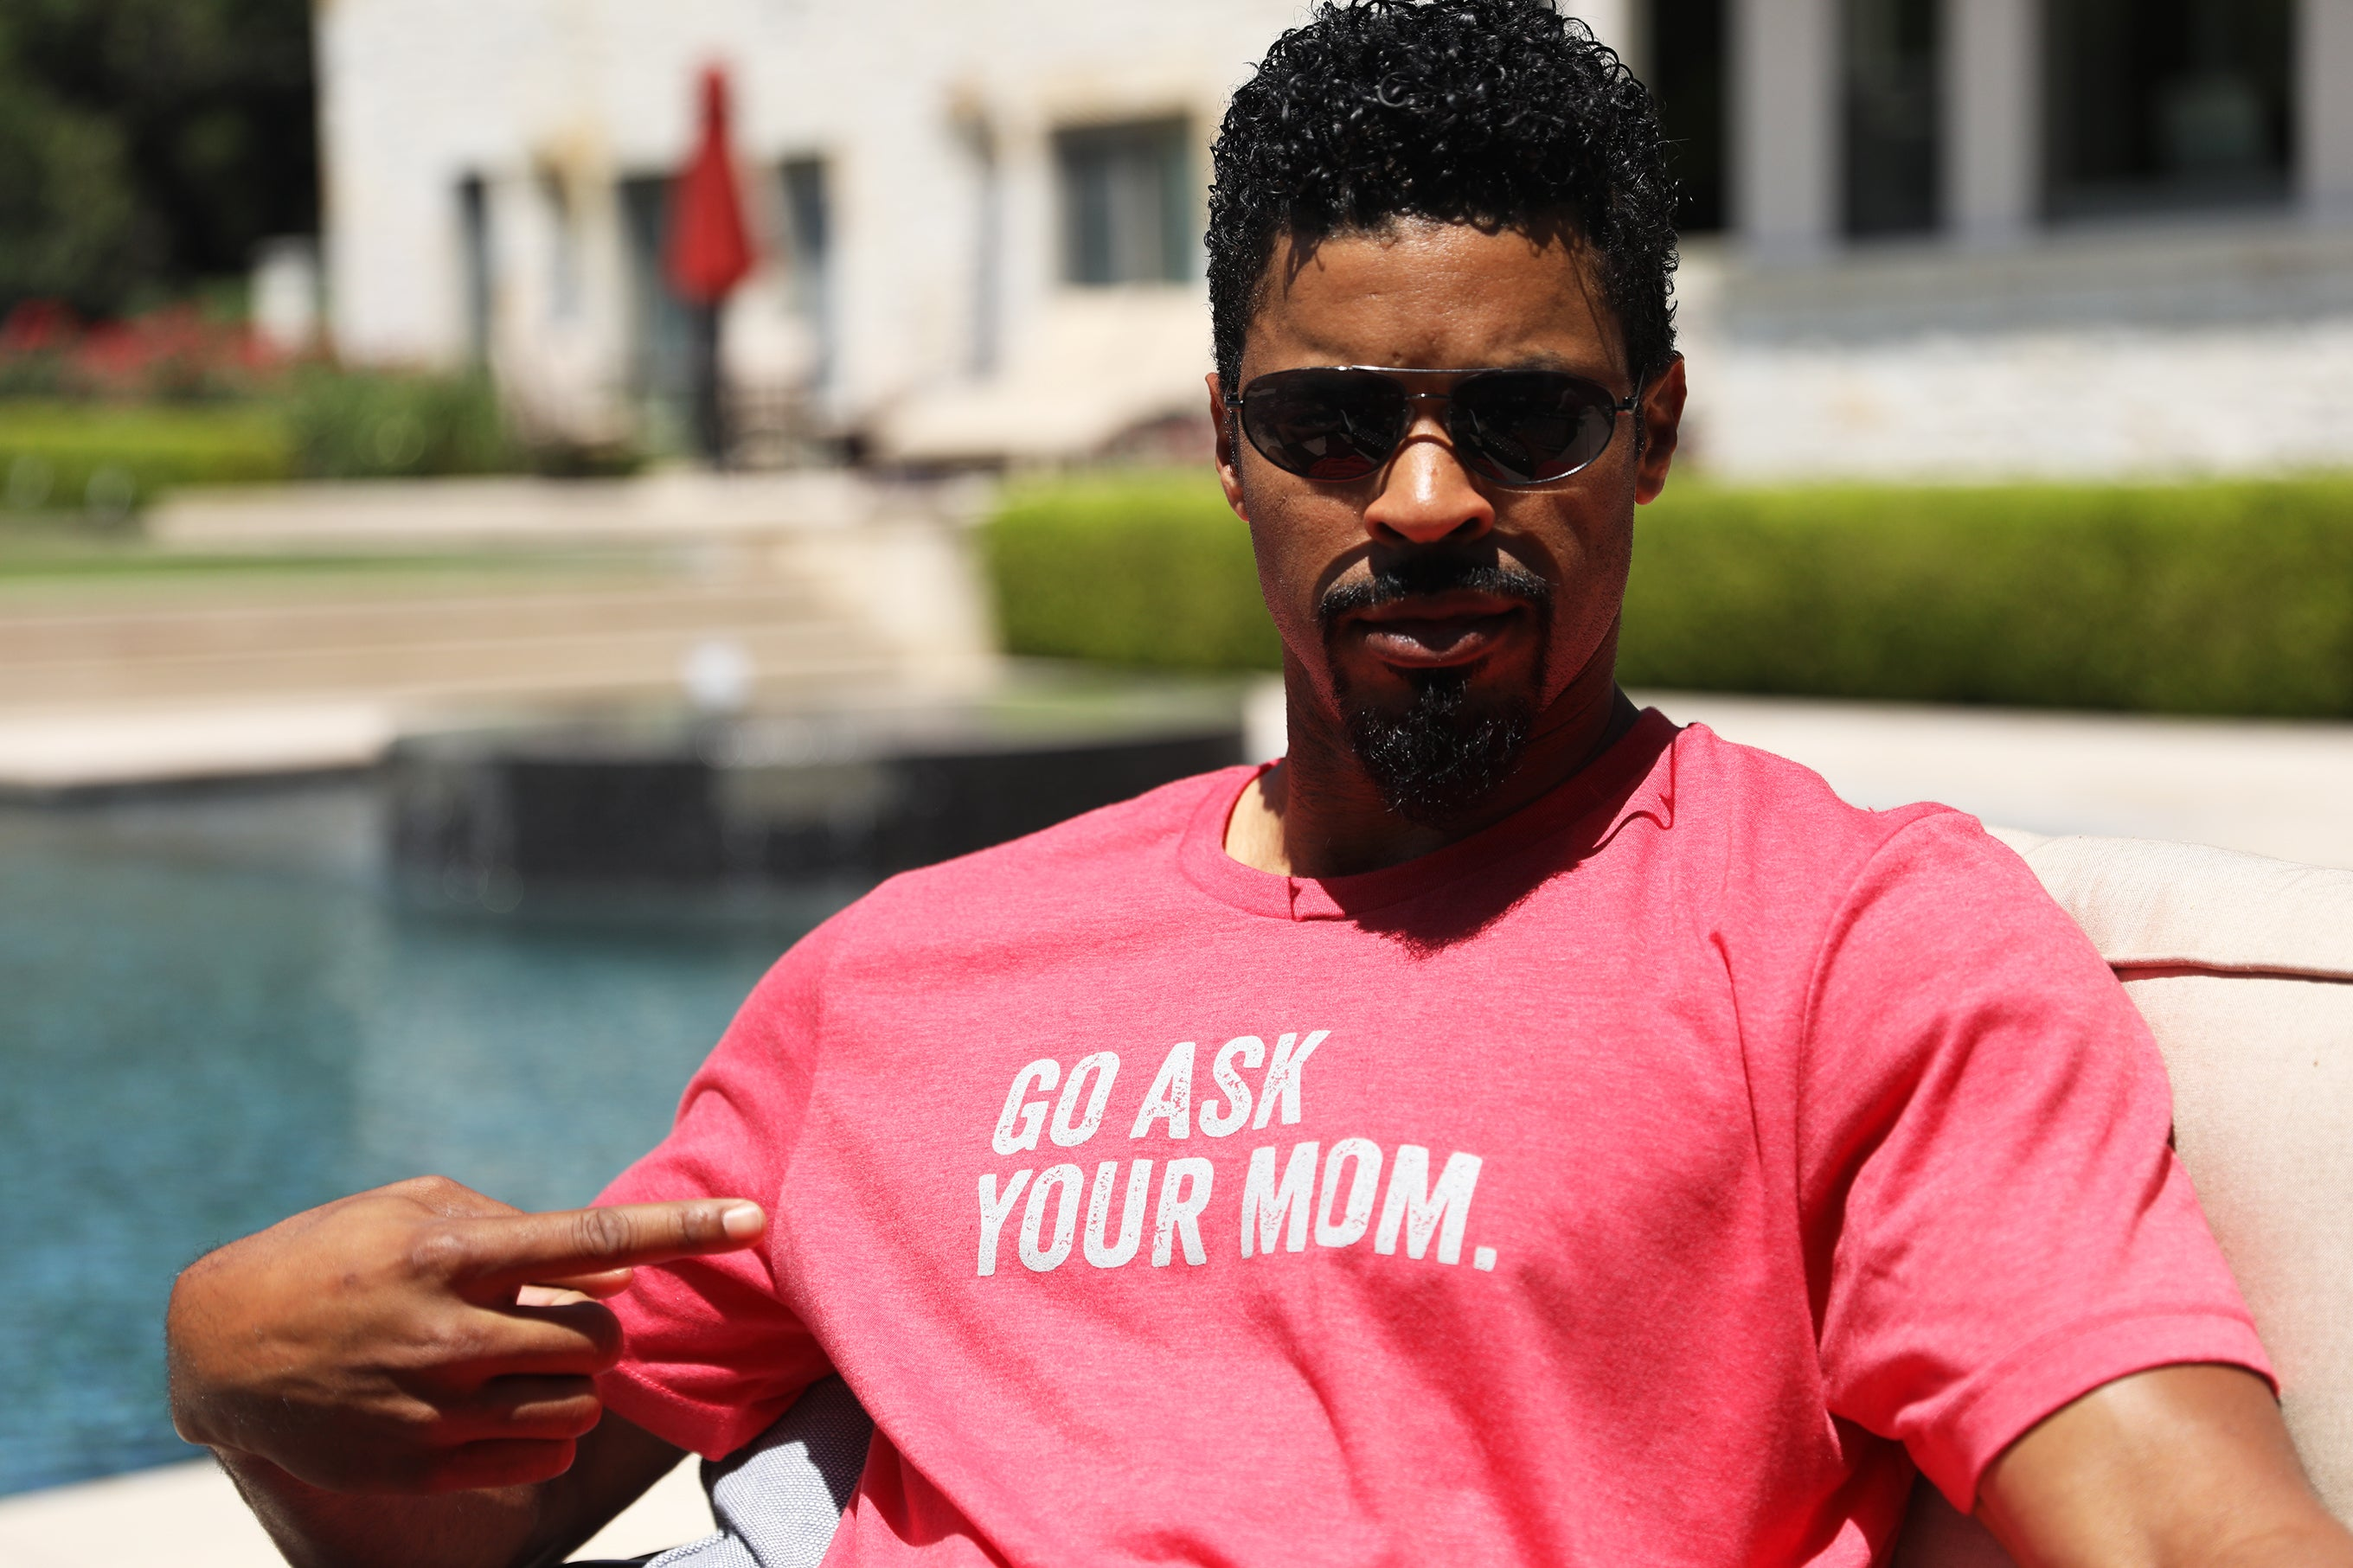 Go Ask Your Mom Tee